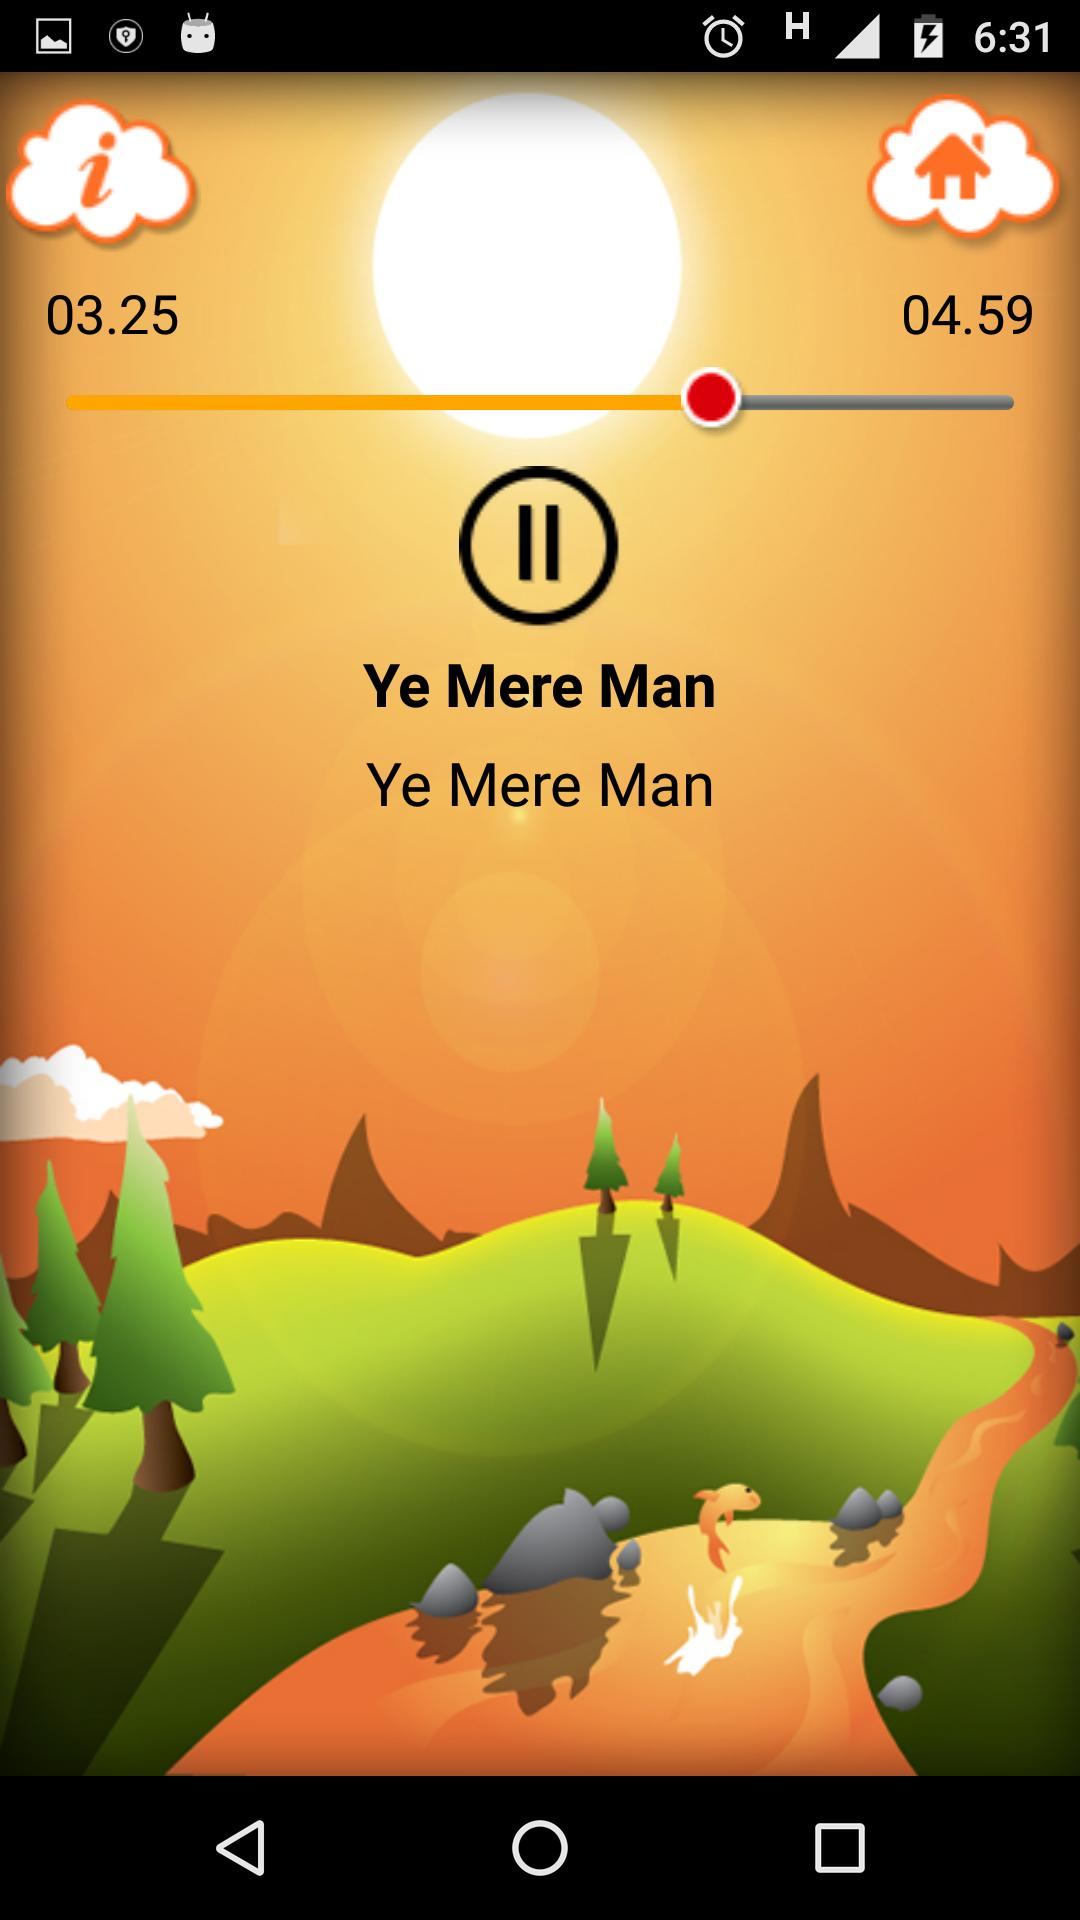 Jesus Songs In Hindi For Android Apk Download See more of jesus songs in hindi on facebook. jesus songs in hindi for android apk